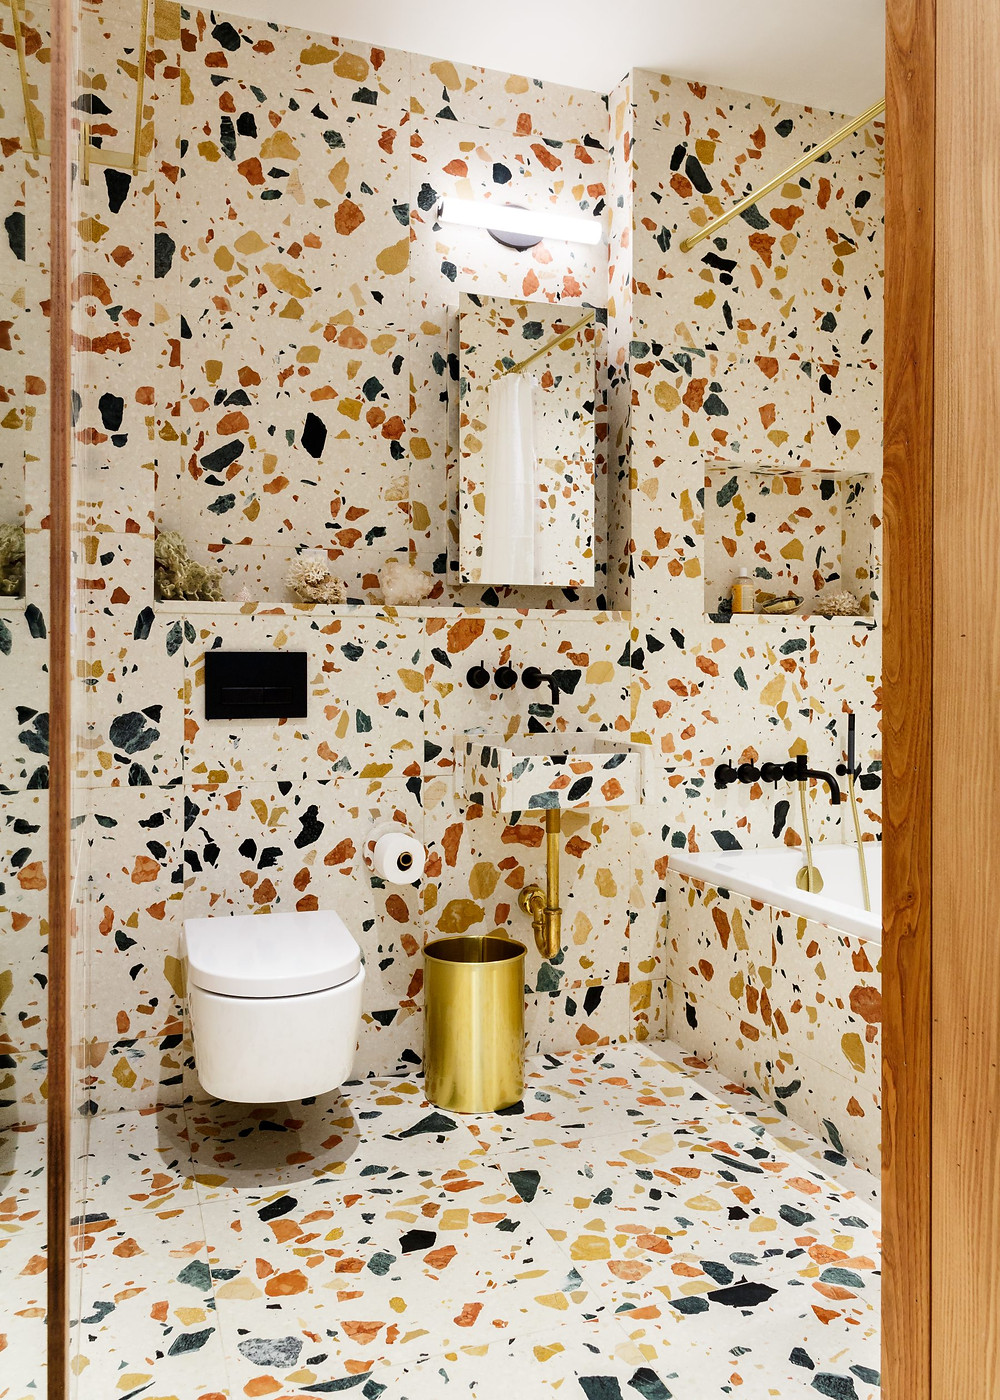 Terrazzo bathrooms in a New York residence, 2015, designed byRP Miller, product used: Marmoreal White tiles